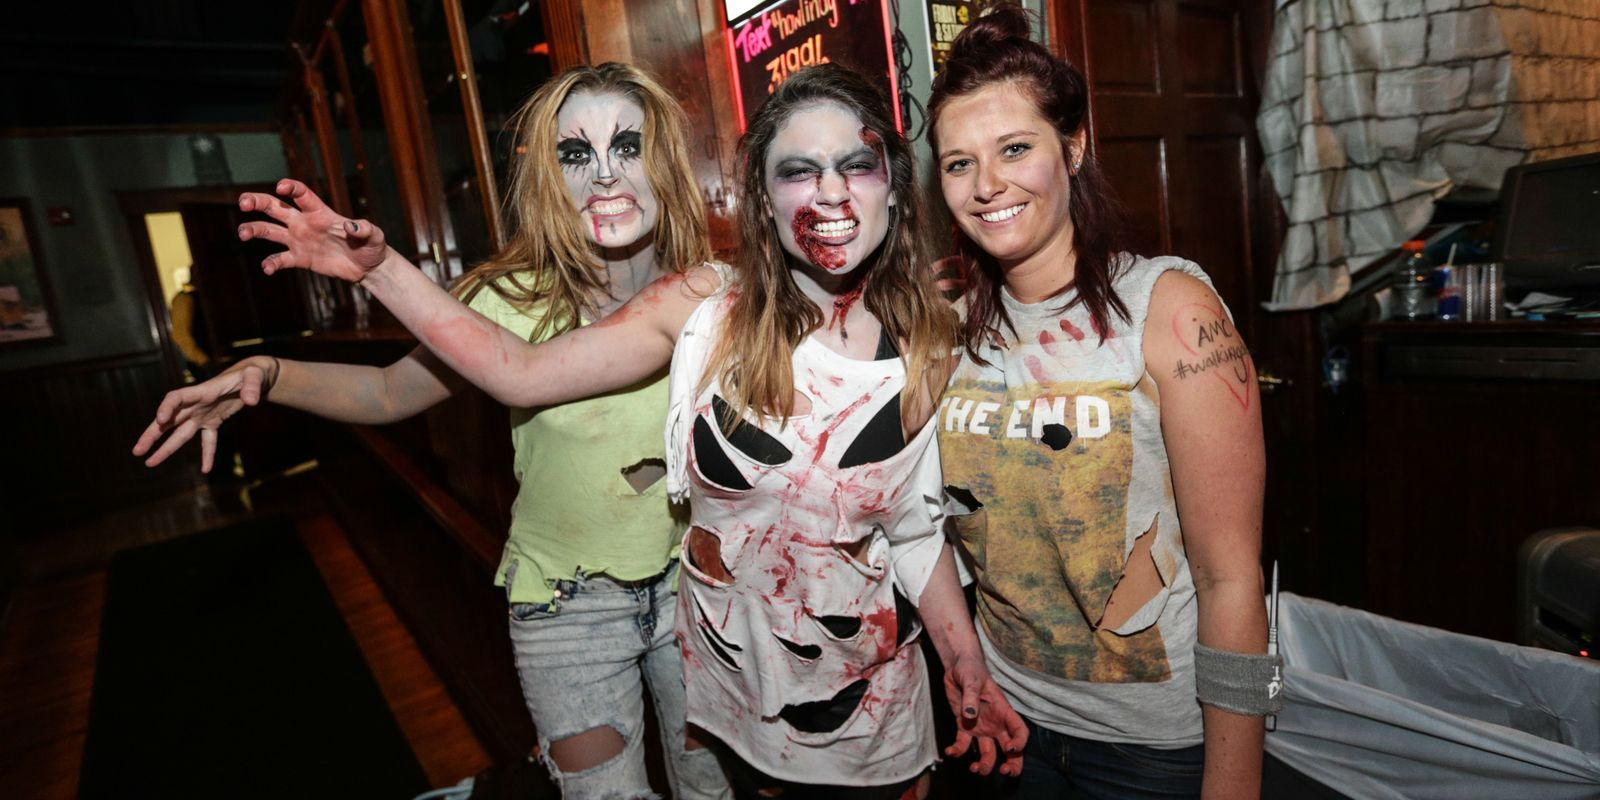 halloween outfit ideas to look super scary and fun - let us publish